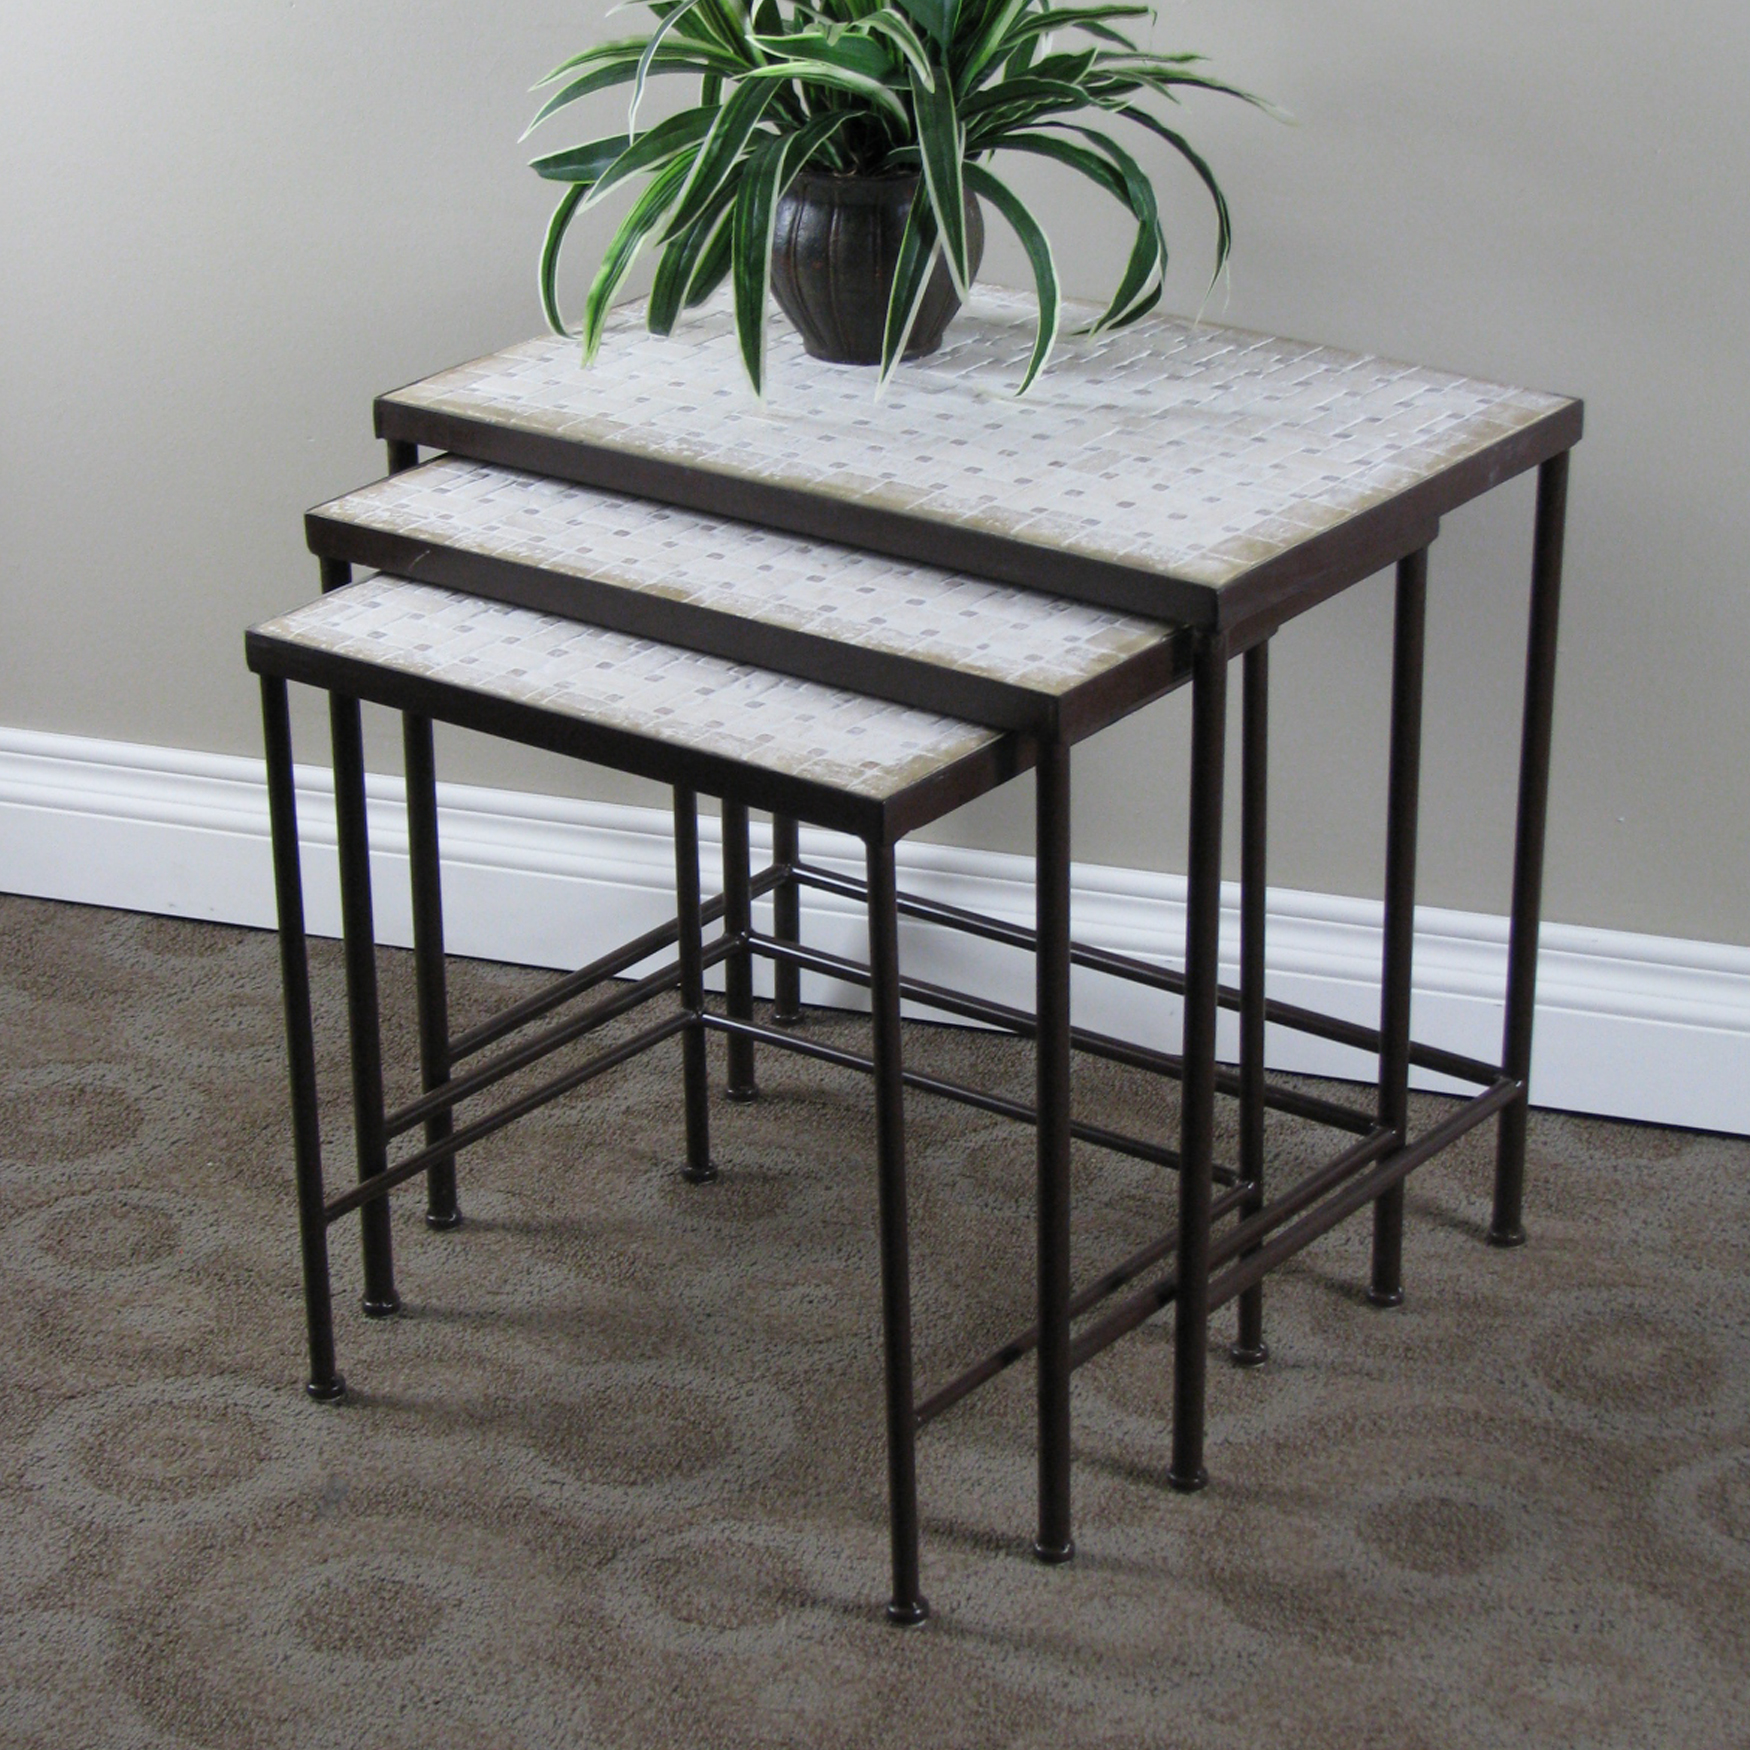 3-Pc. Travertine Nesting Tables , RUSTIC BRONZE